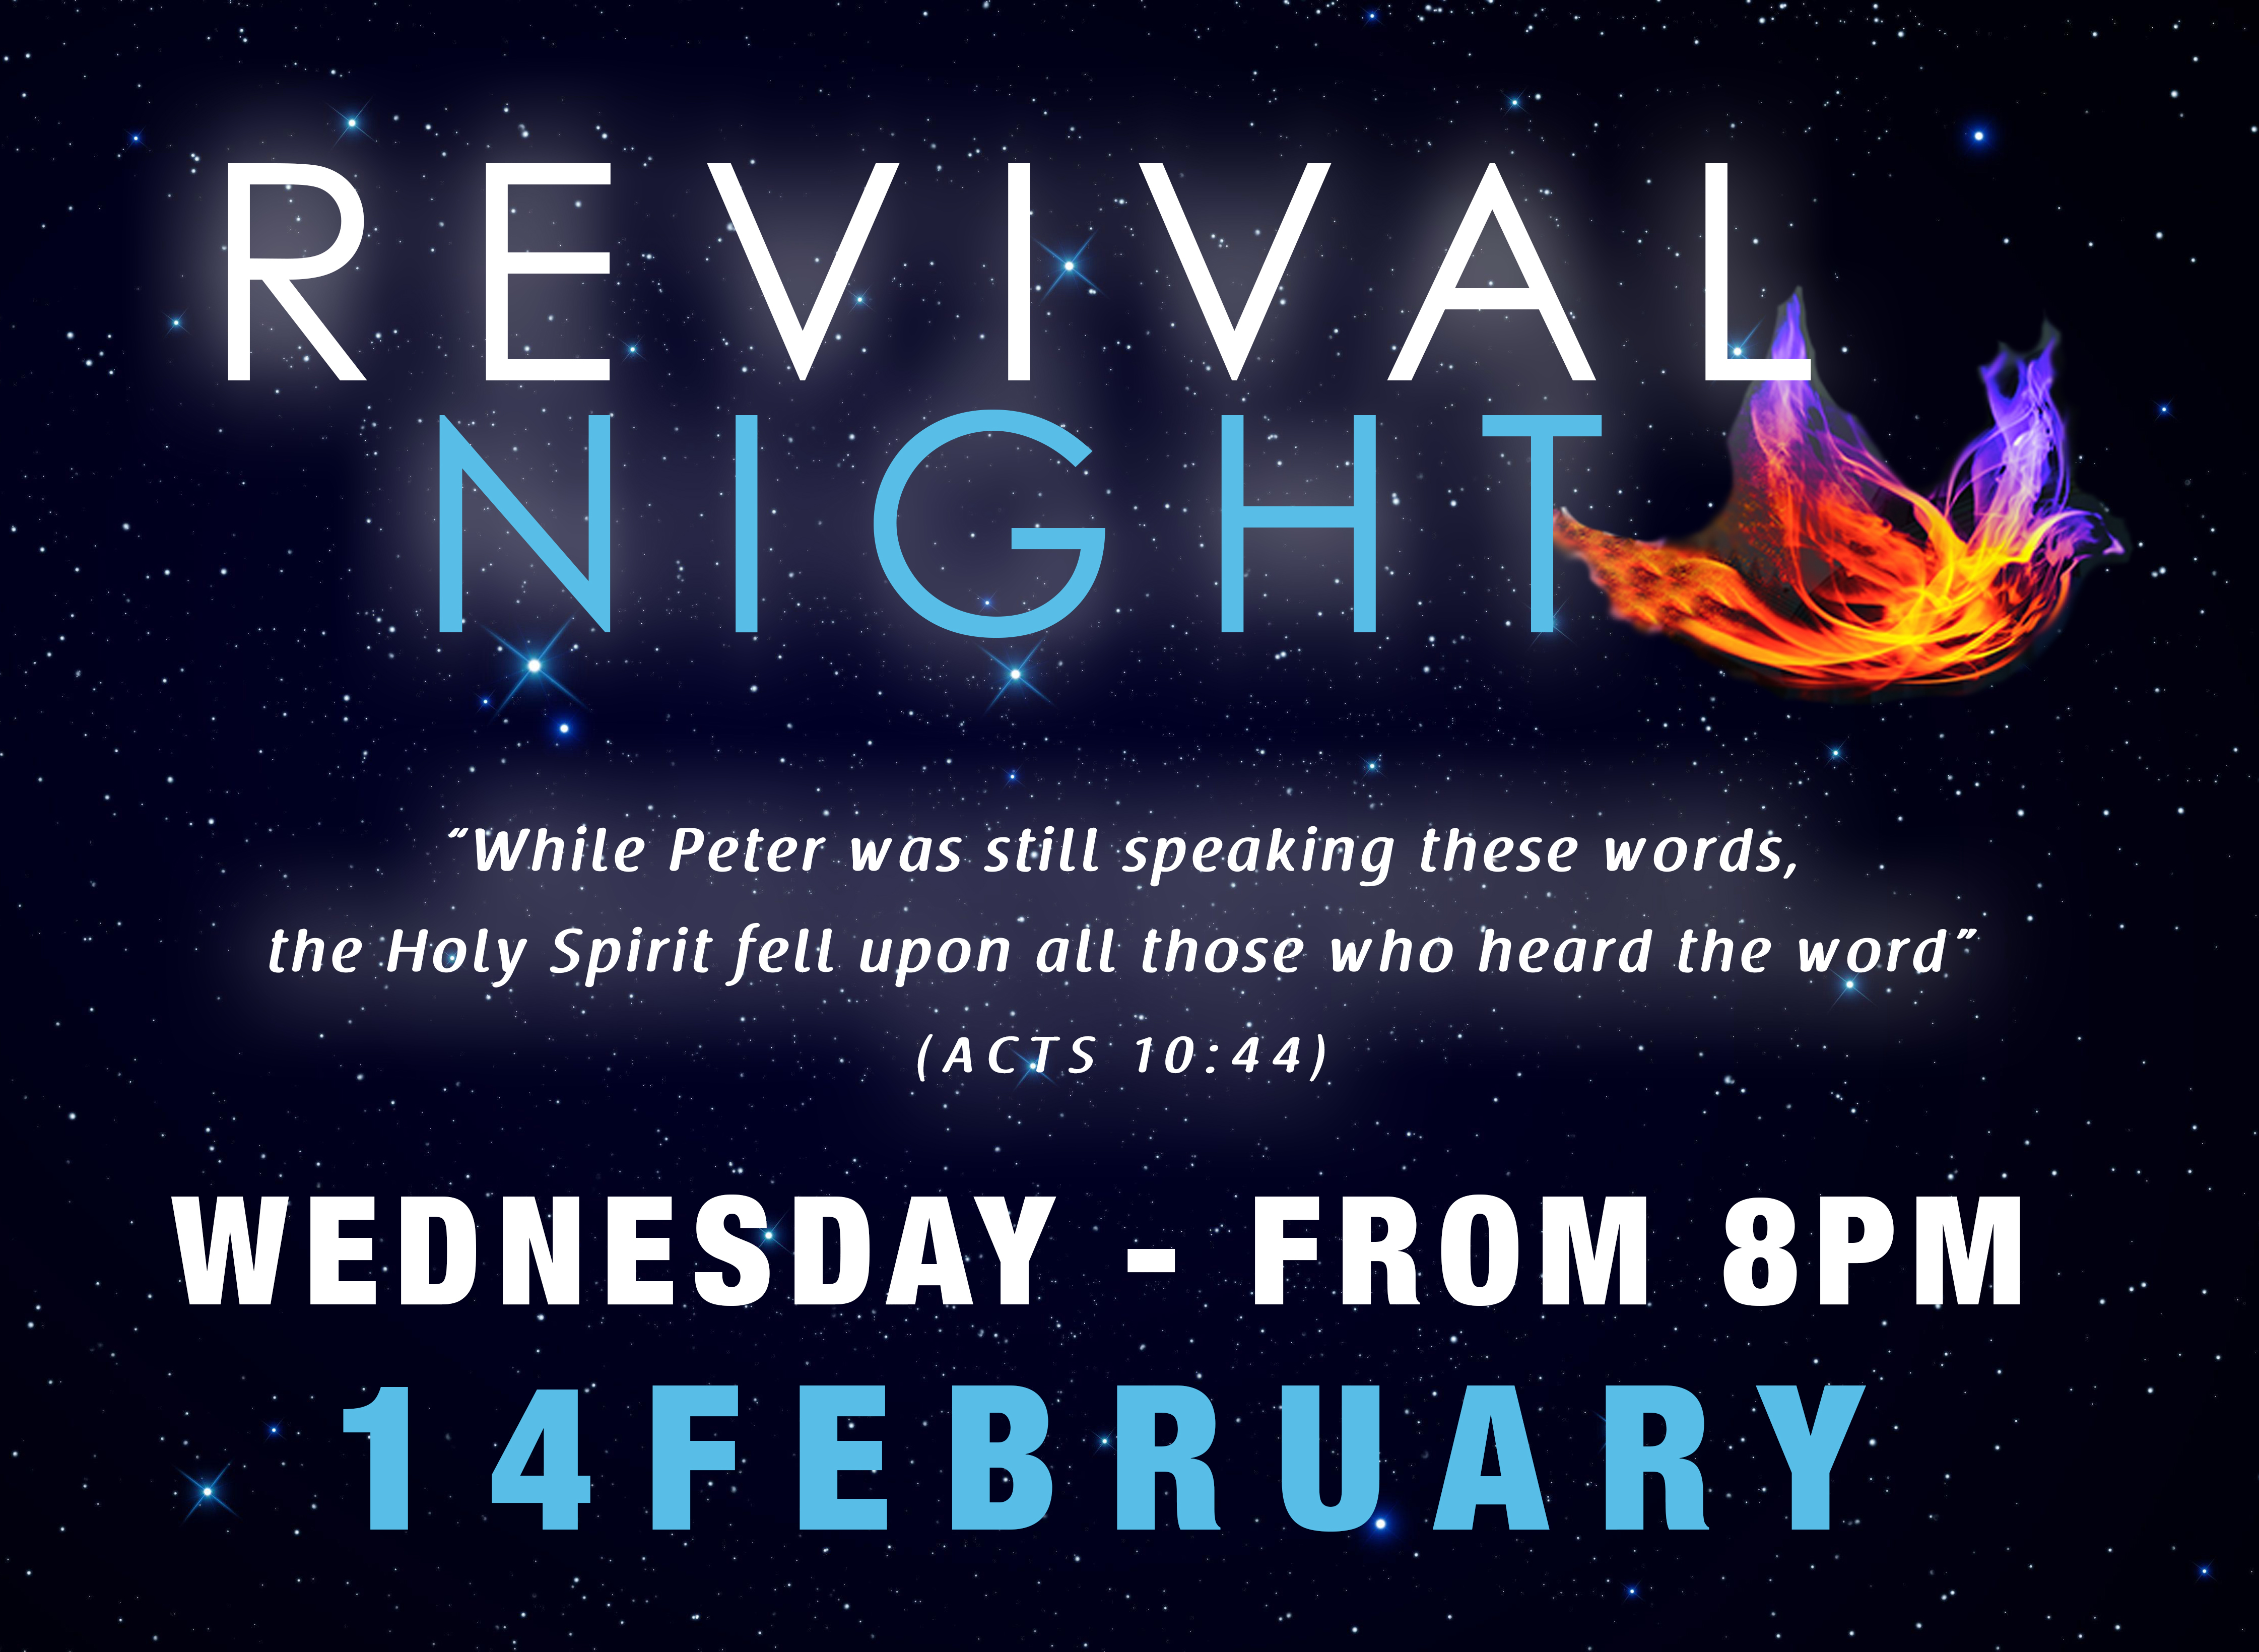 RevivalNight